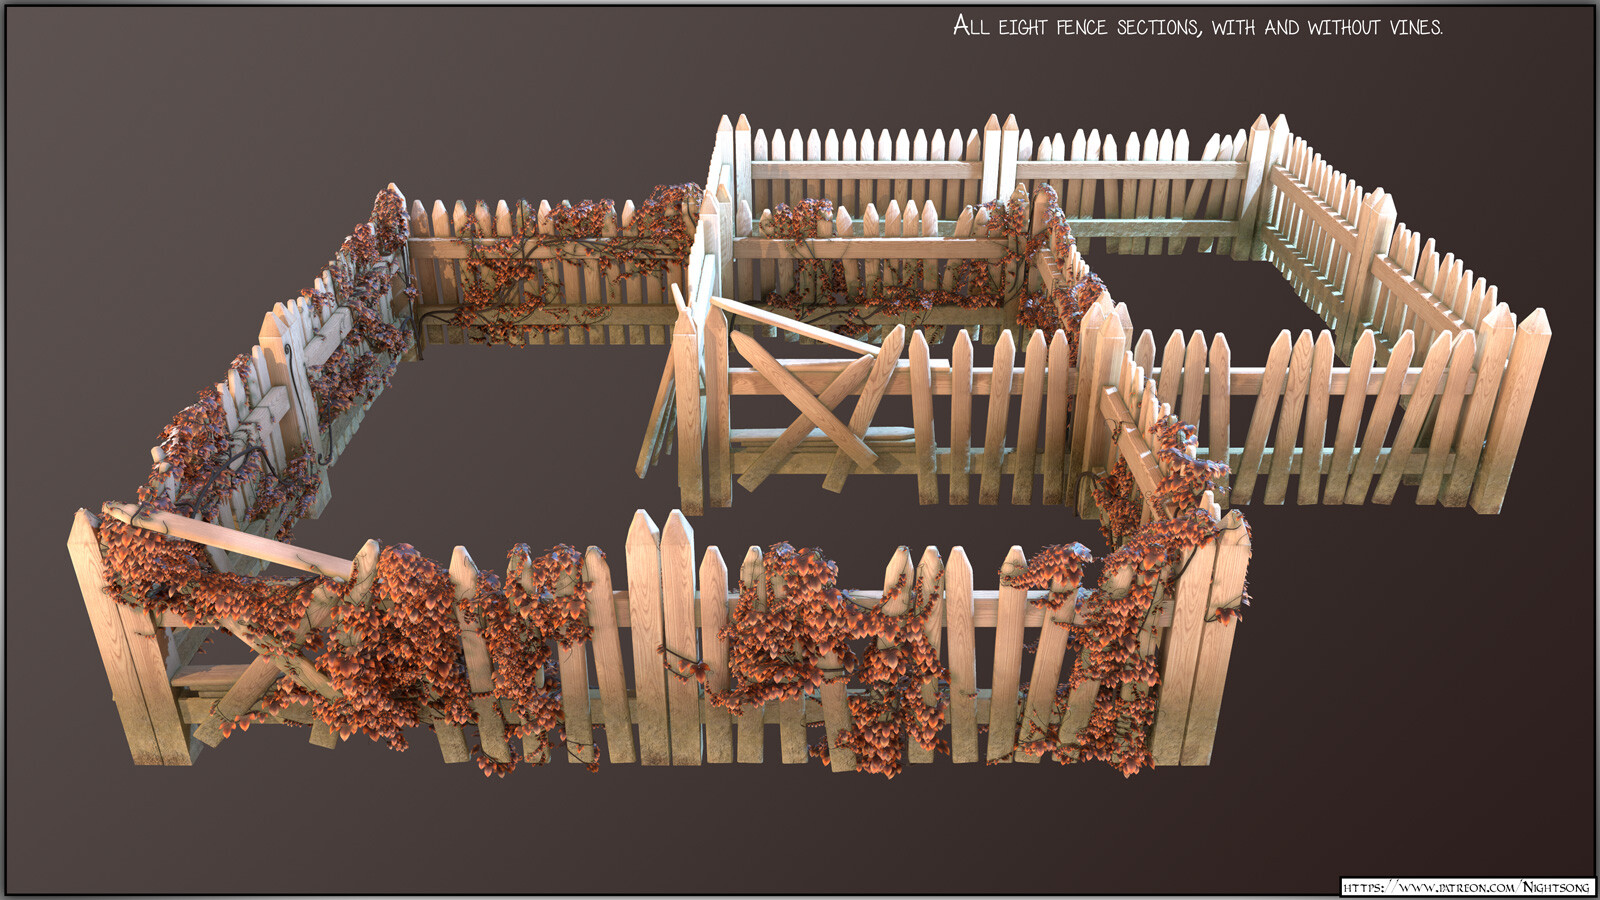 A Marmoset Toolbag render of all fence sections.